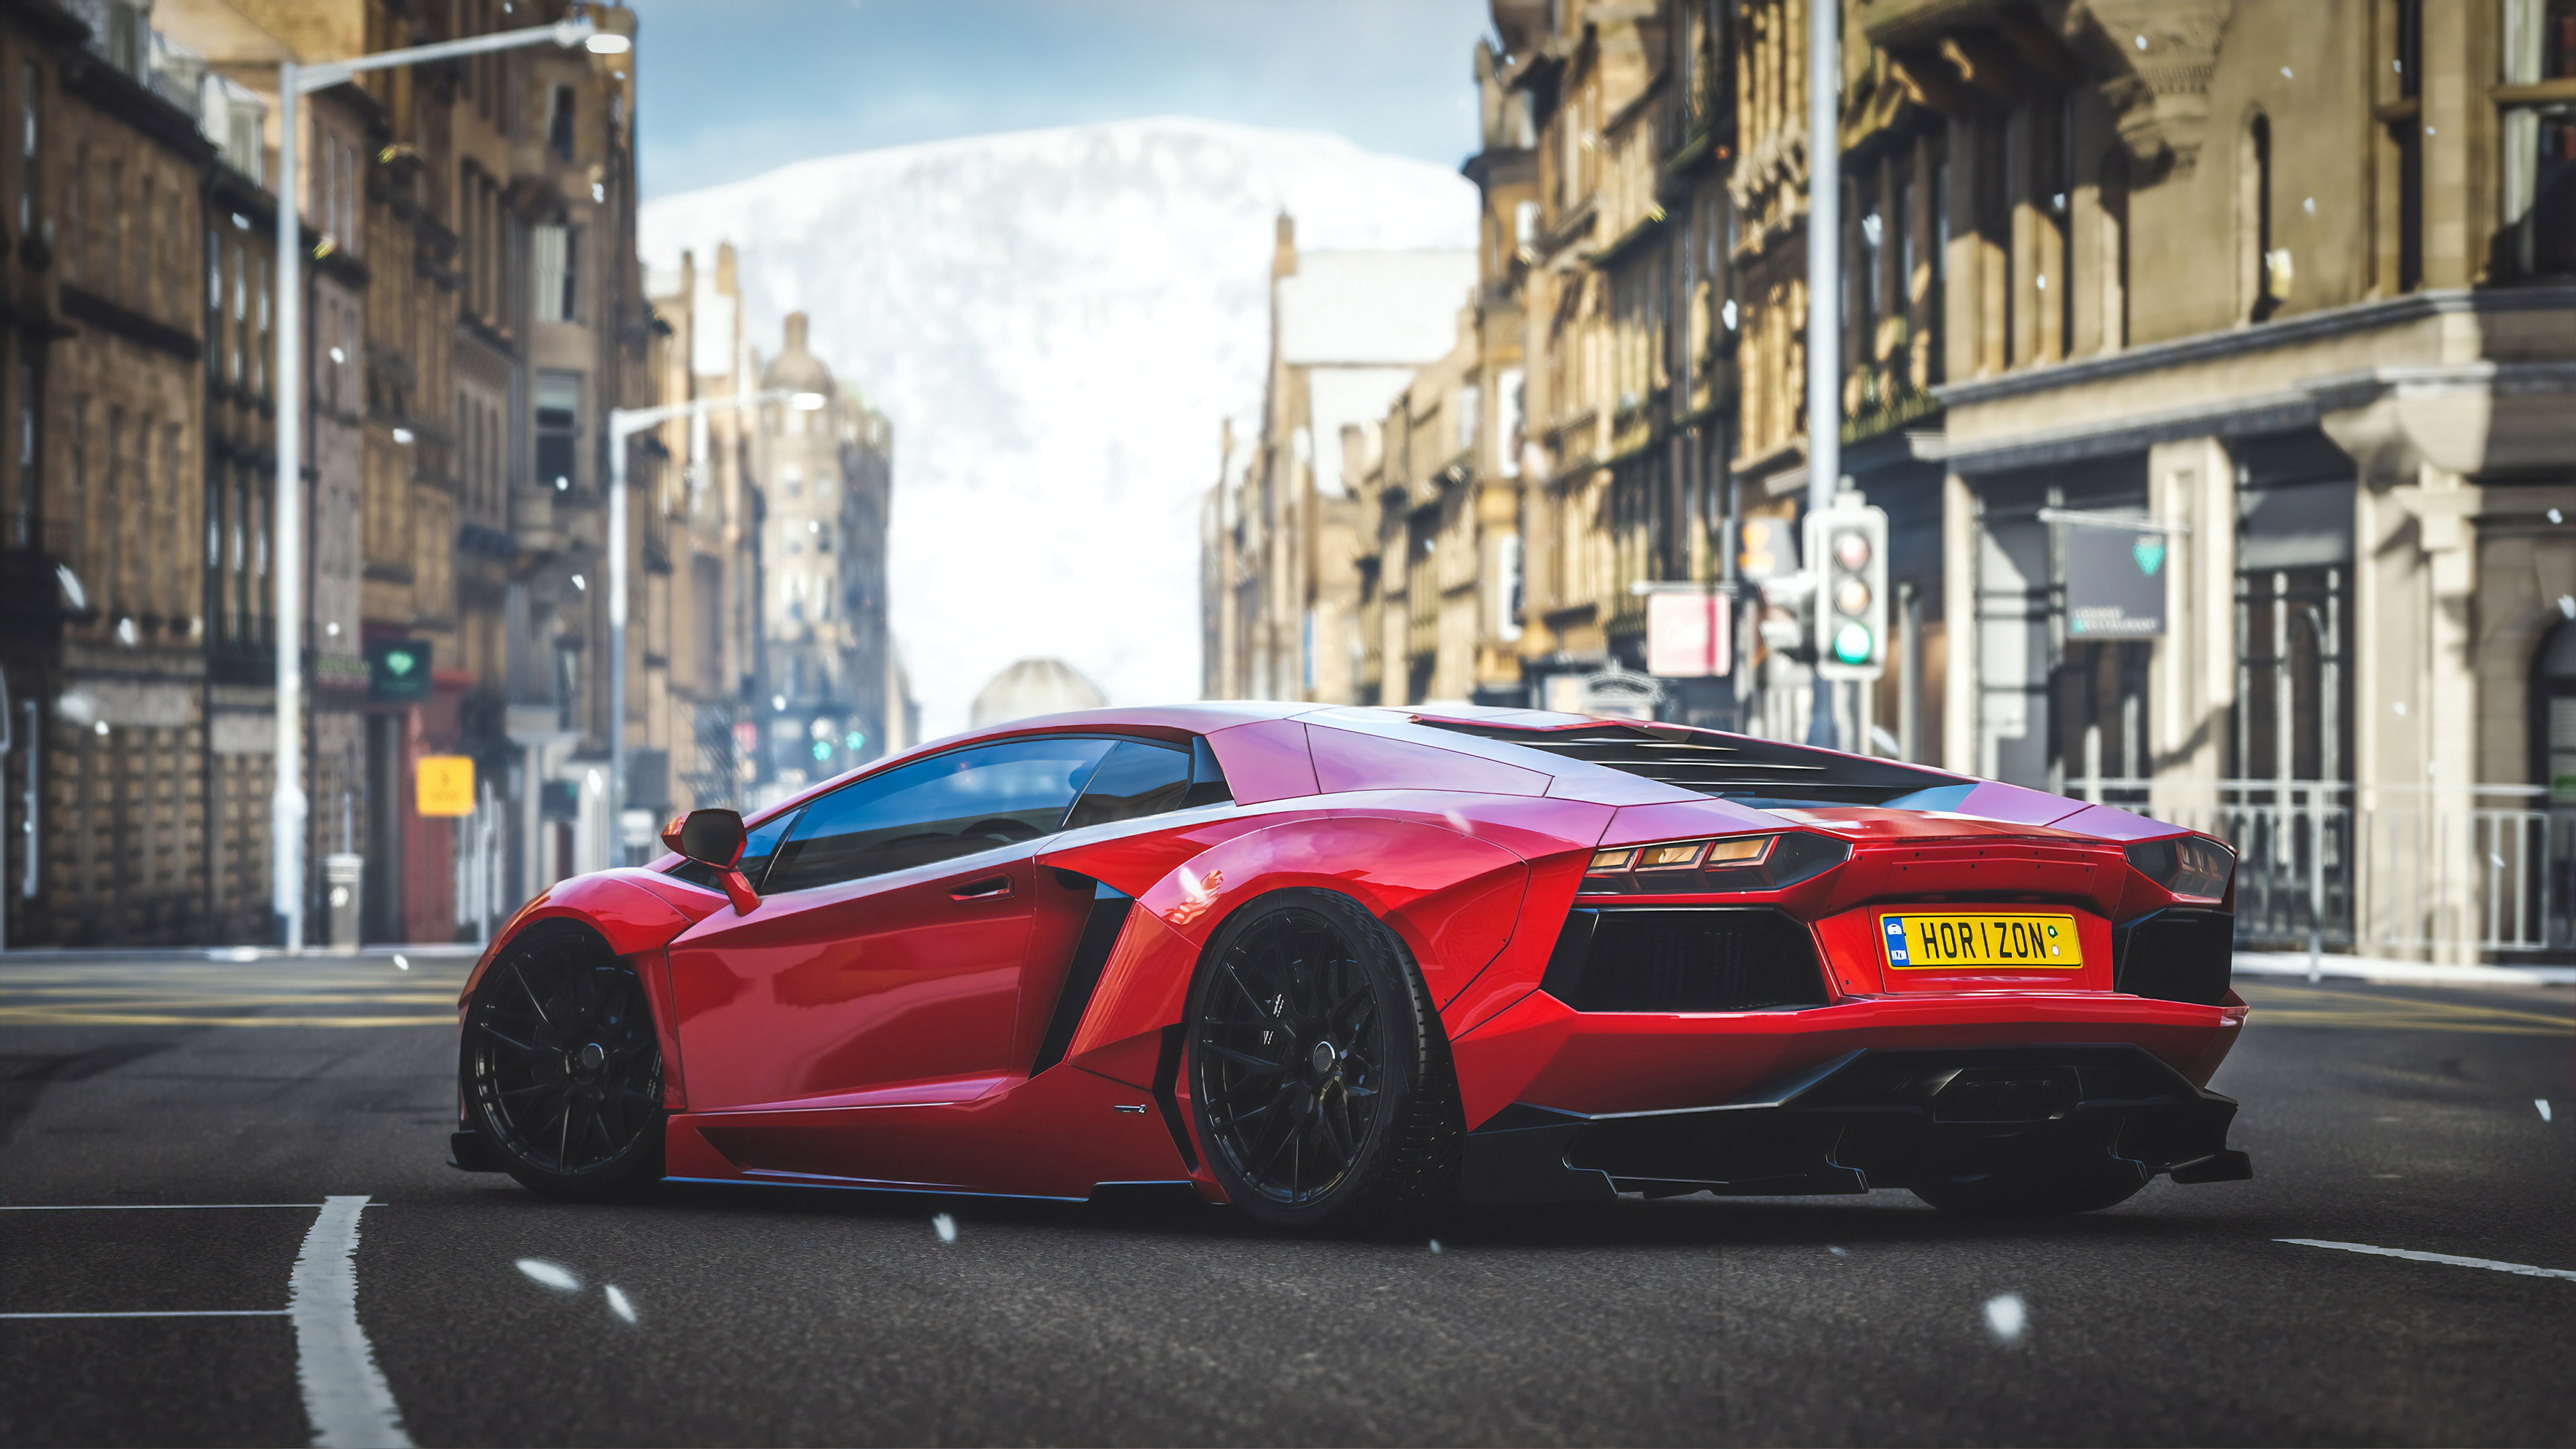 forza horizon 4 lambo 1568057382 - Forza Horizon 4 Lambo - lamborghini wallpapers, hd-wallpapers, games wallpapers, forza horizon 4 wallpapers, cars wallpapers, 4k-wallpapers